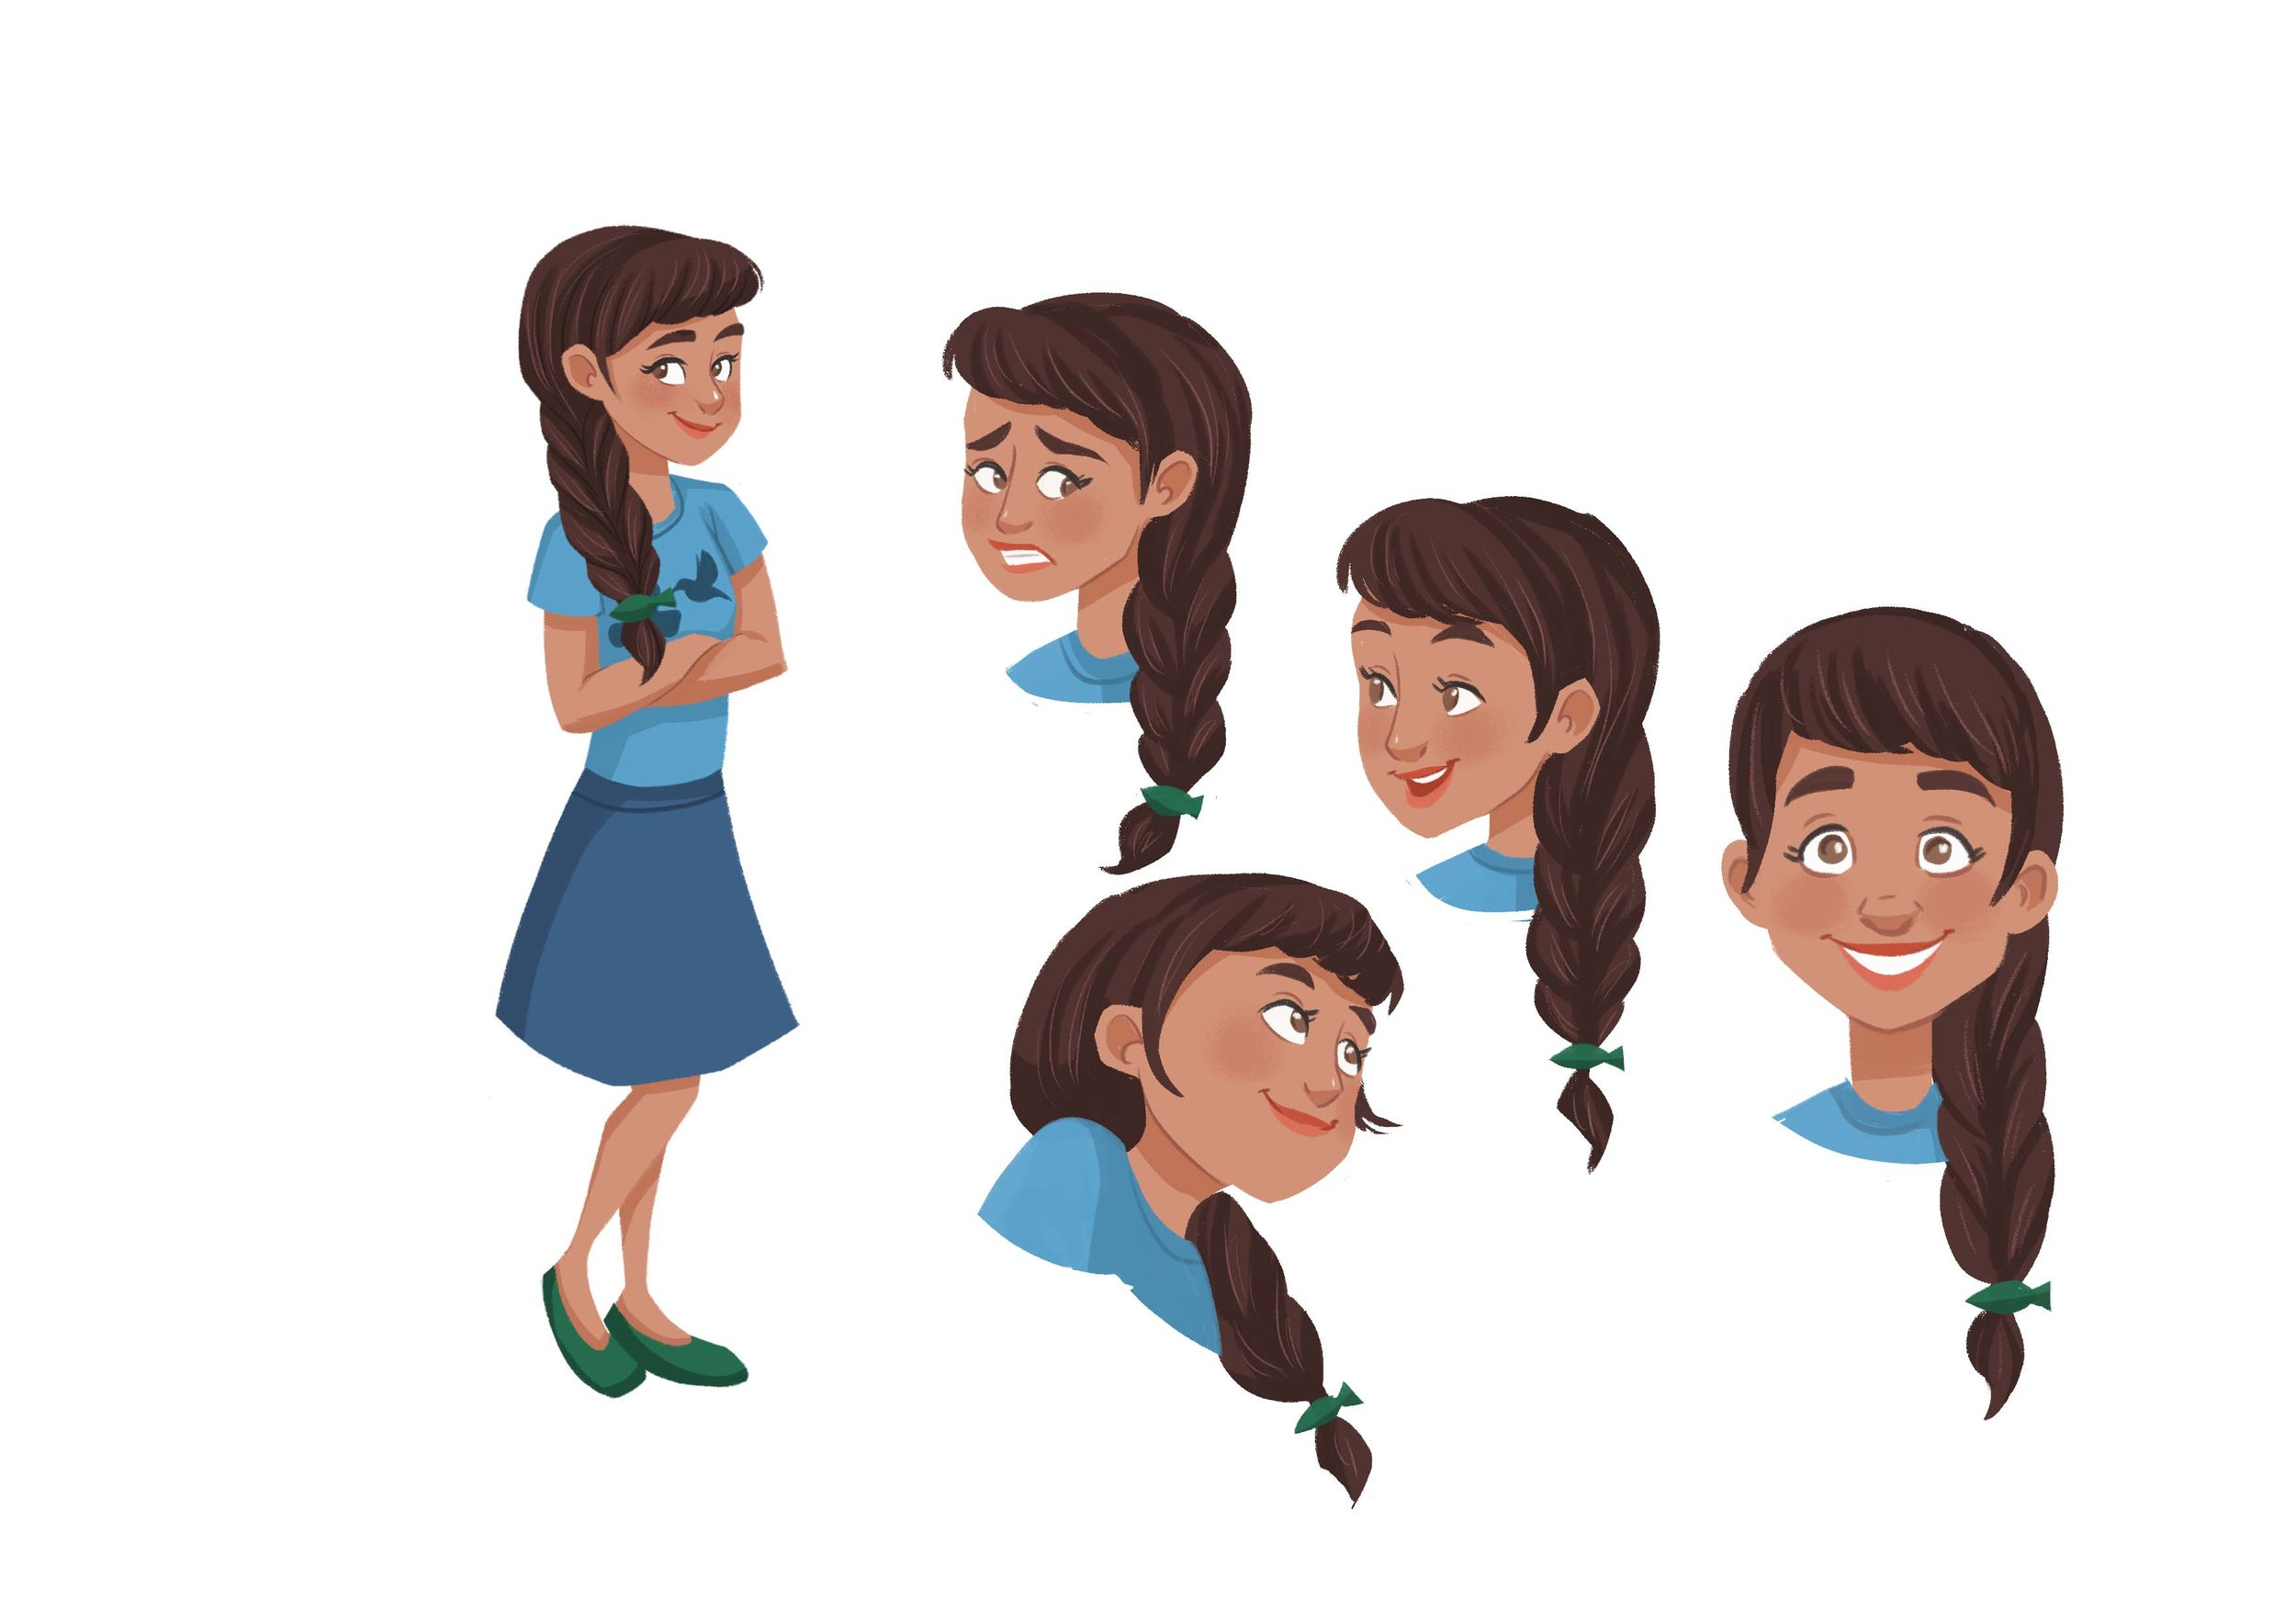 lily_expressions3.jpg